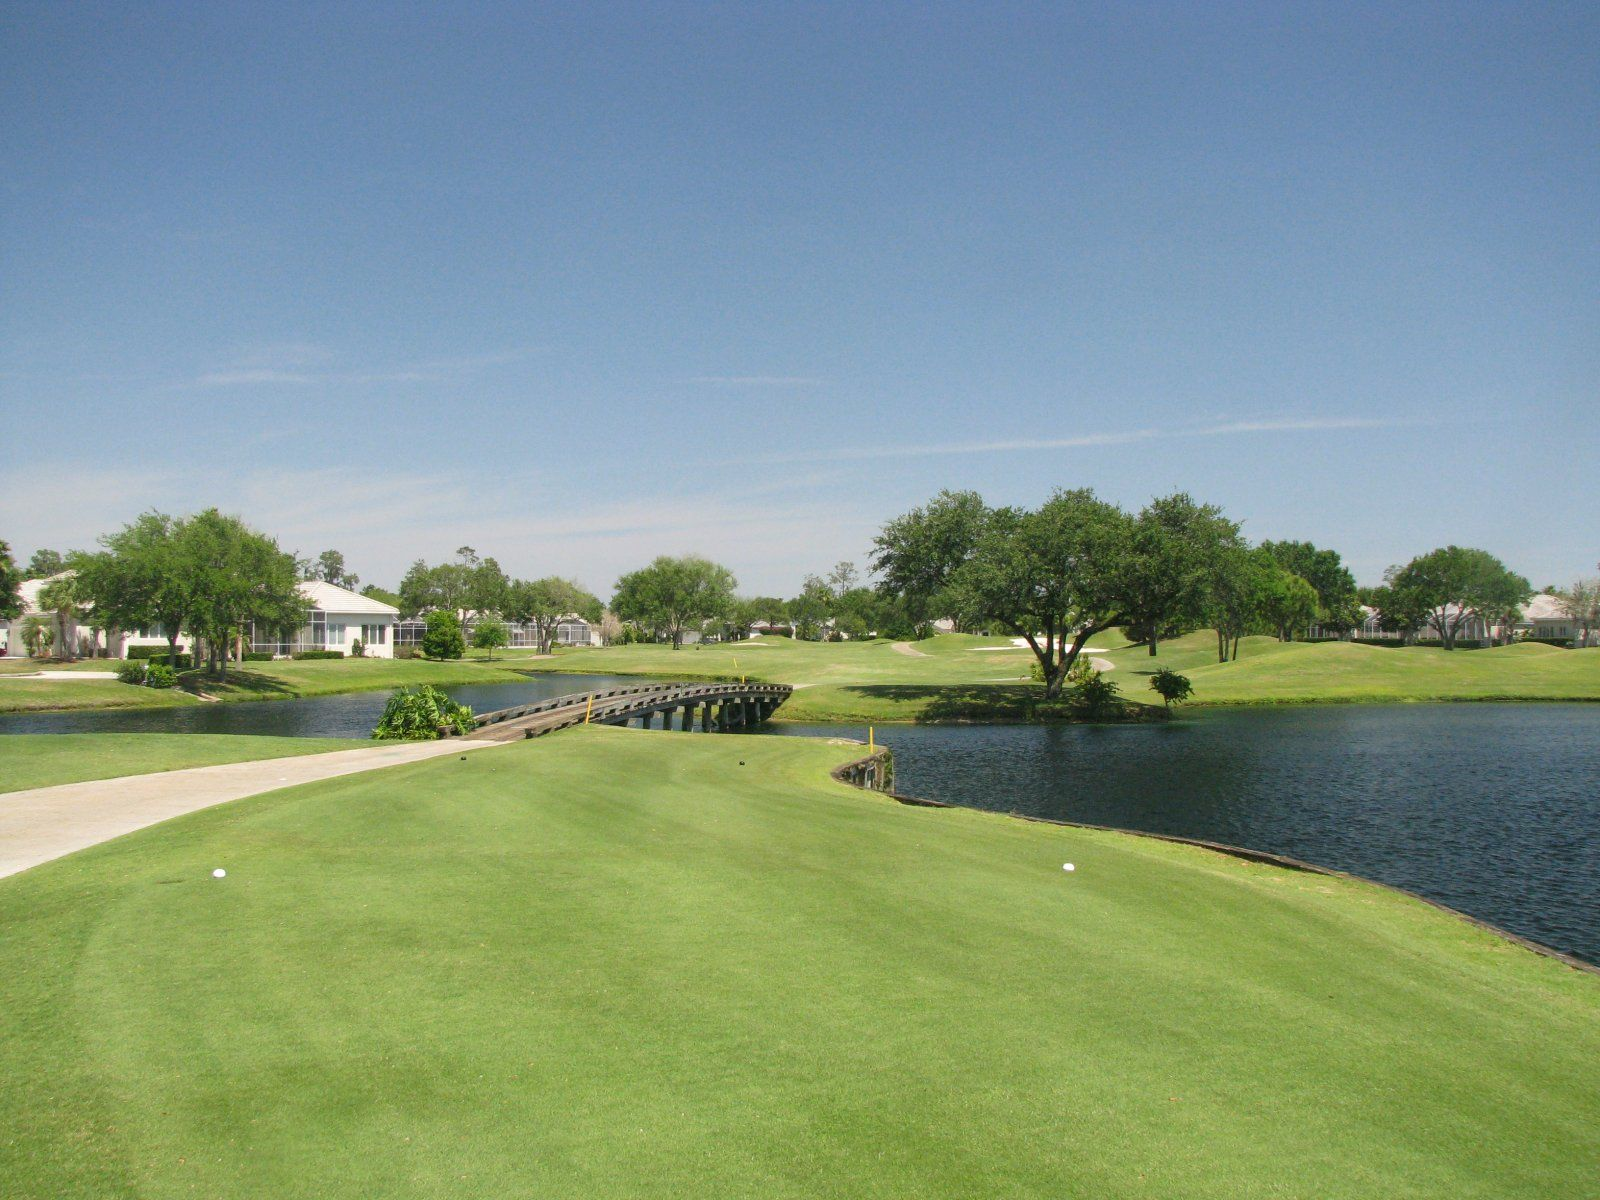 Golf Course Photo Gallery Golf Courses Best Golf Courses Golf